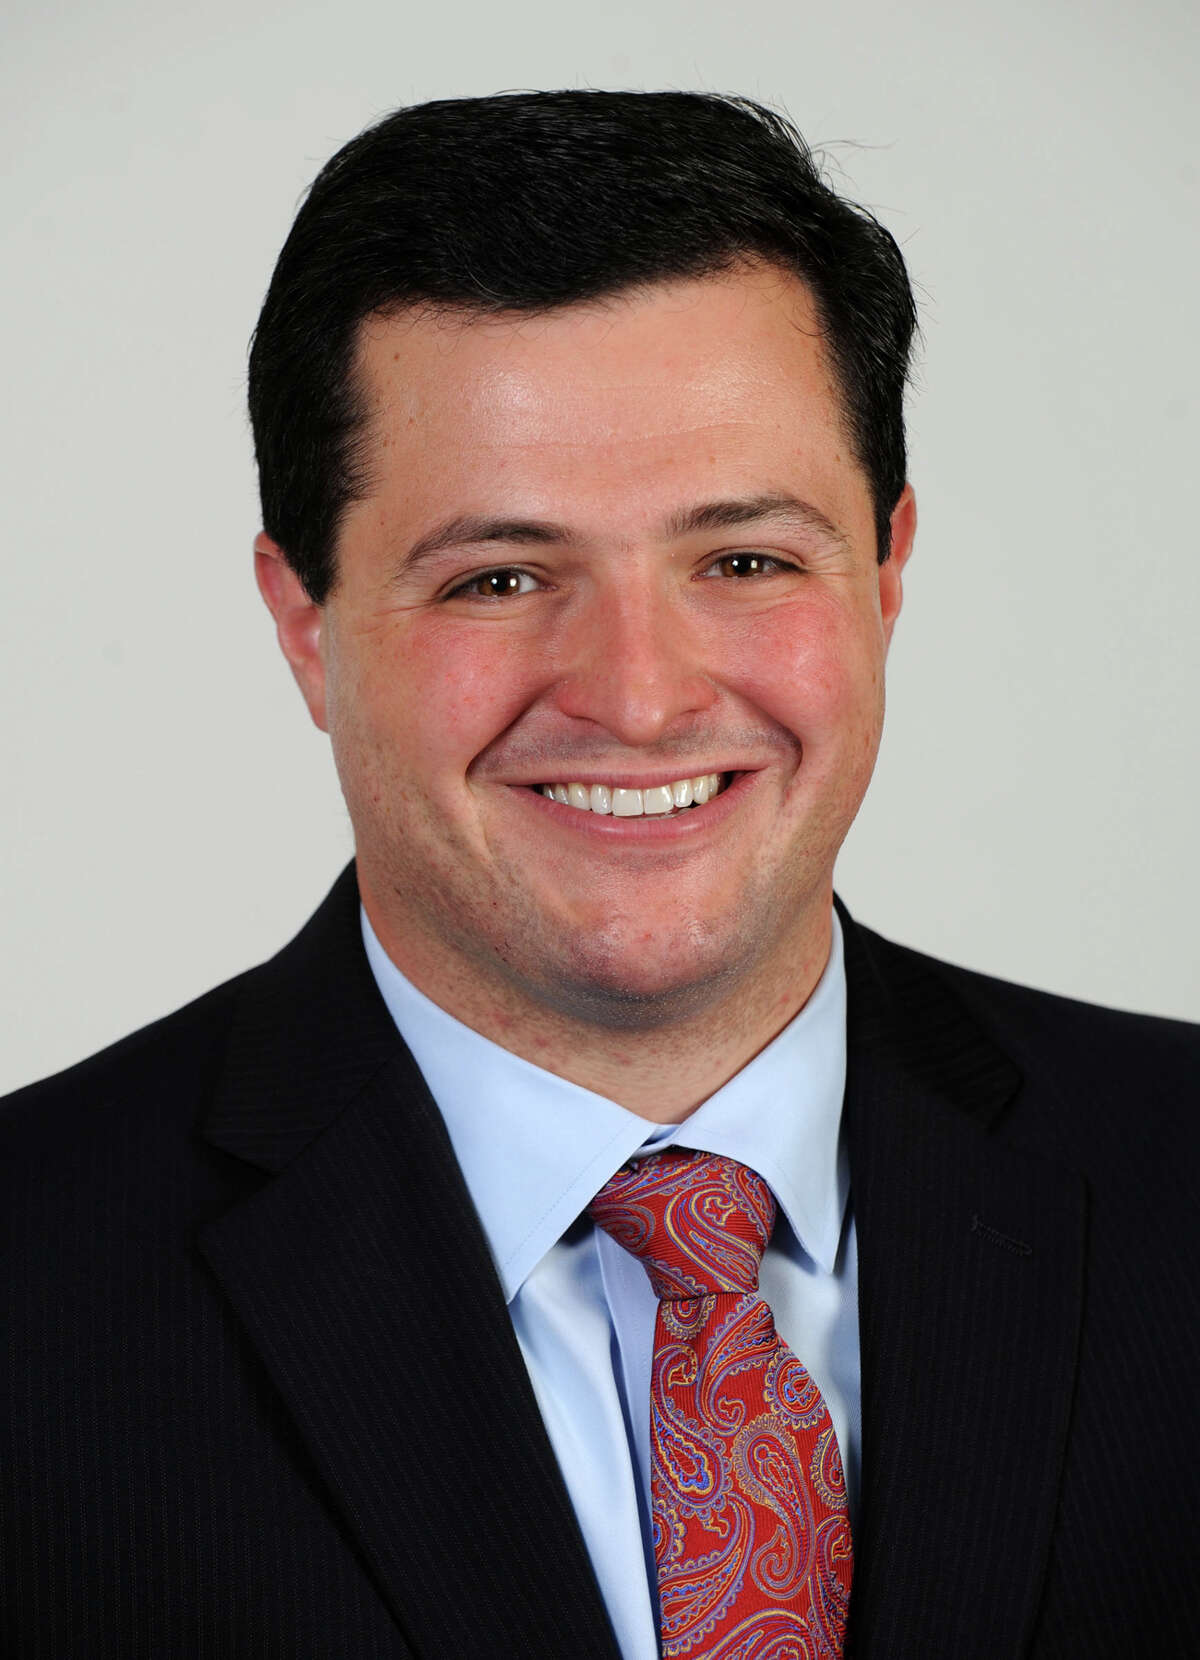 Tim Herbst, First Selectman of Trumbull, Conn. will be in Washington, D.C. on Thursday for the winter meeting of the U.S. Conference of Mayors.